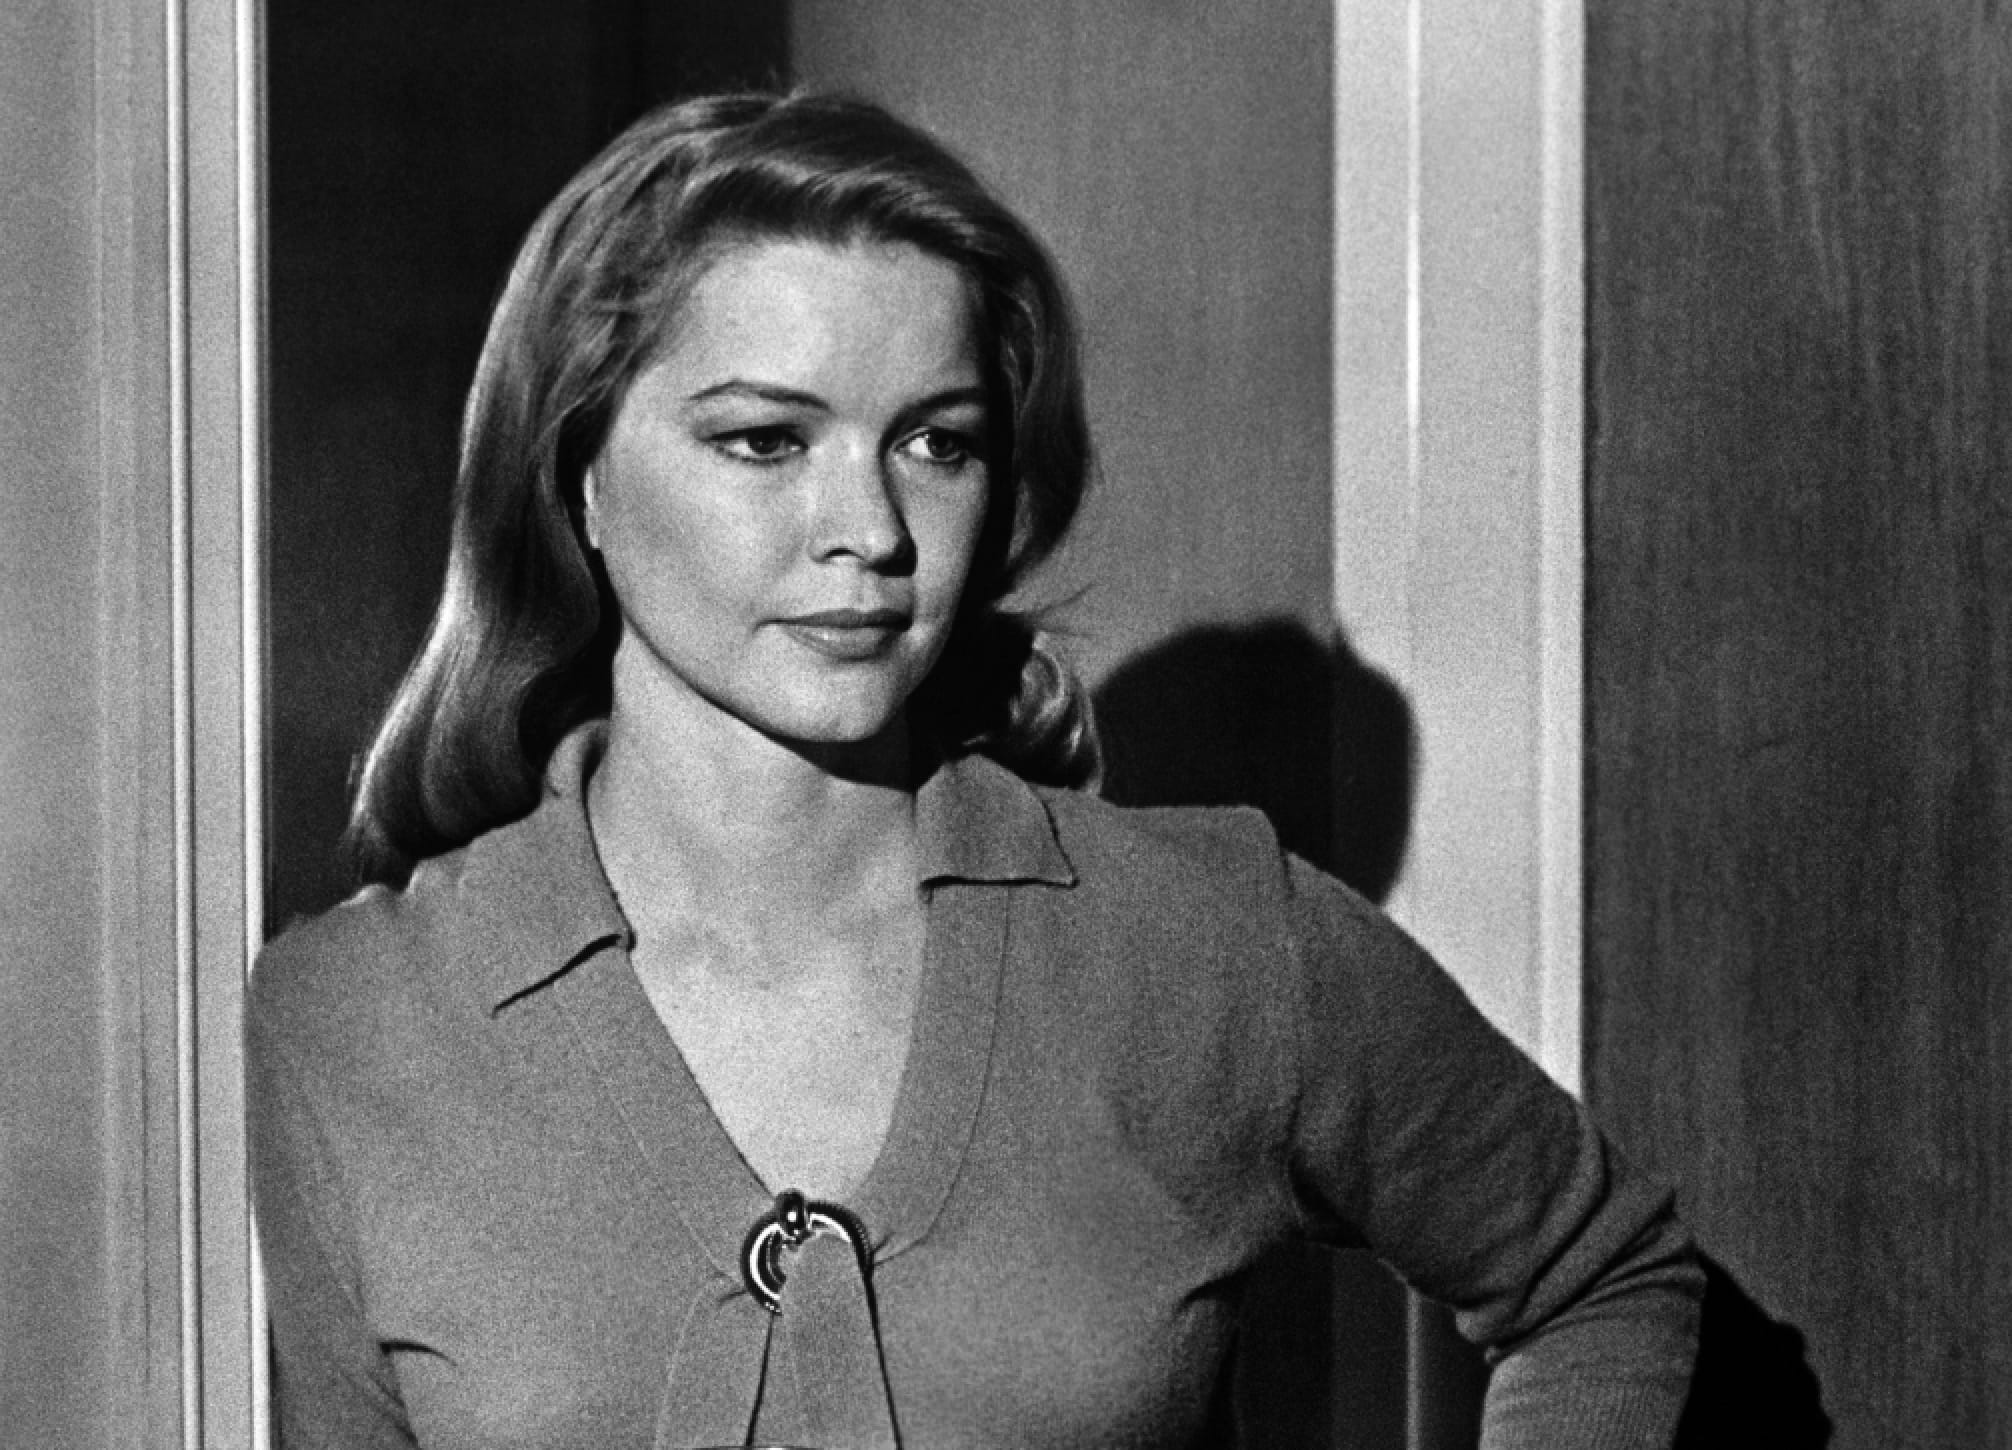 Ellen Burstyn as Lois Farrow in a still from The Last Picture Show. Burstyn was in her 30s when this film was shot. Here she appears posed in a doorway, hand on her hip.